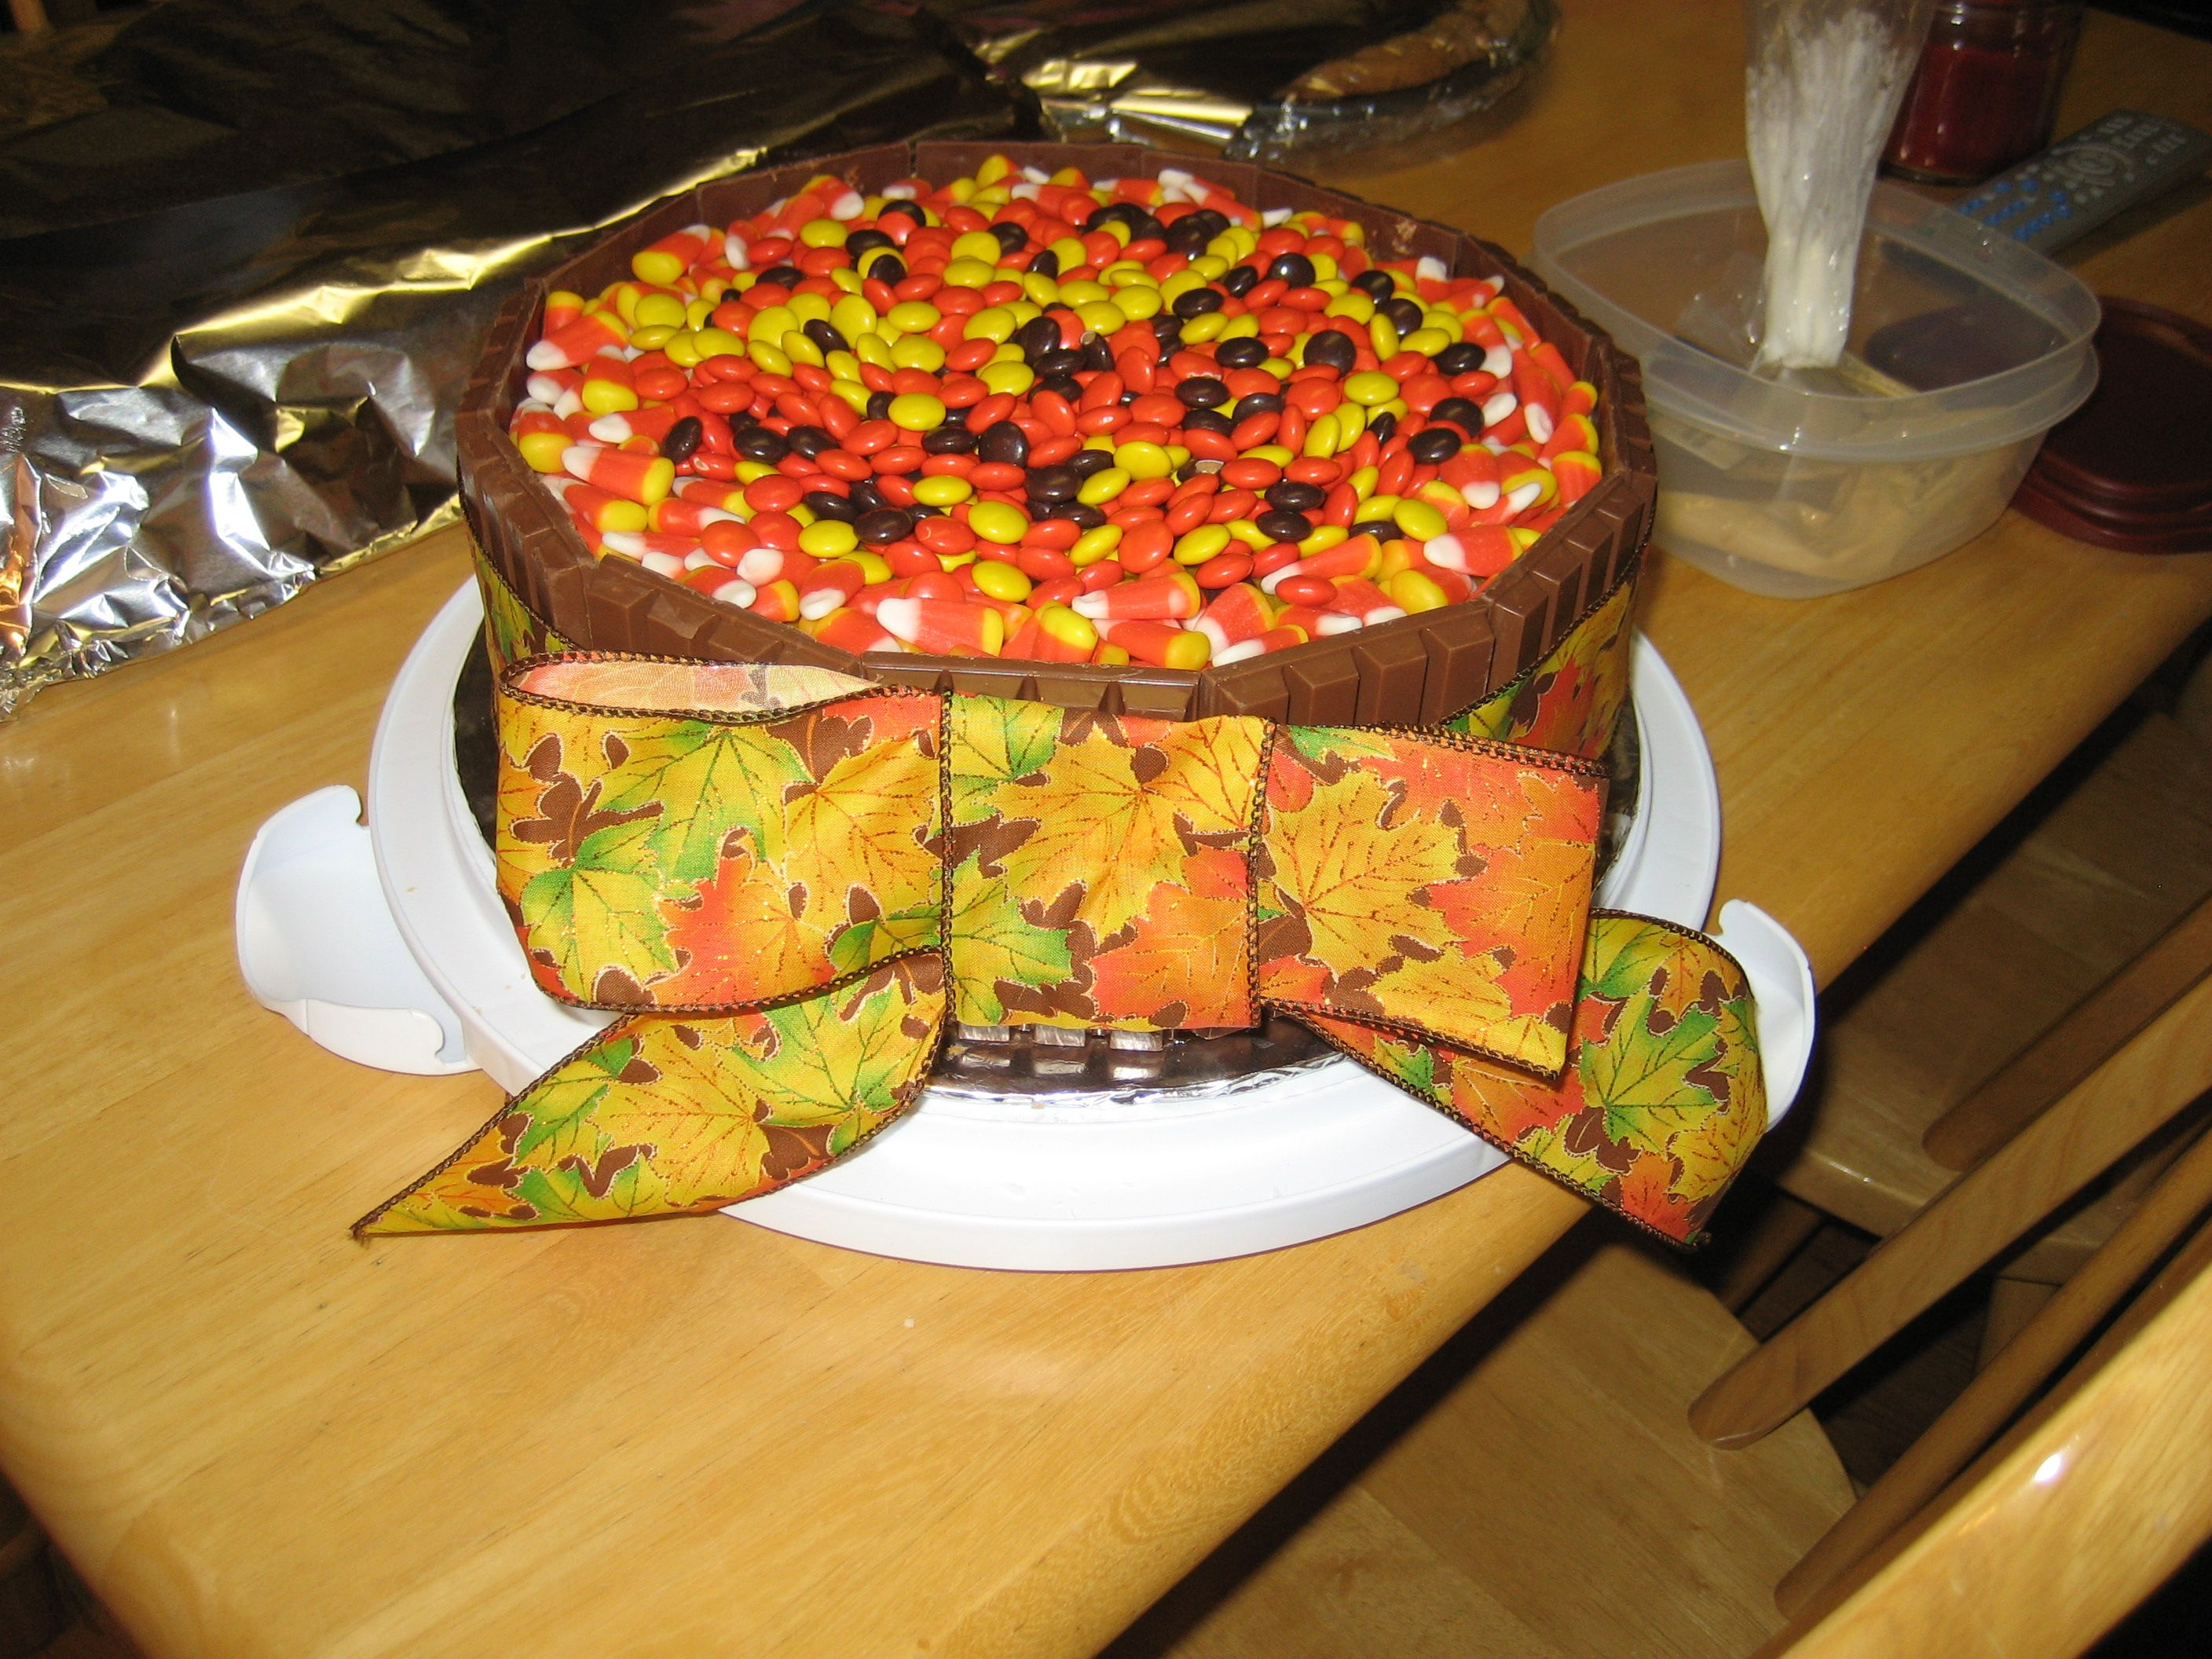 Reeces pieces, candy corn, Kit Kats. On and around the cake.